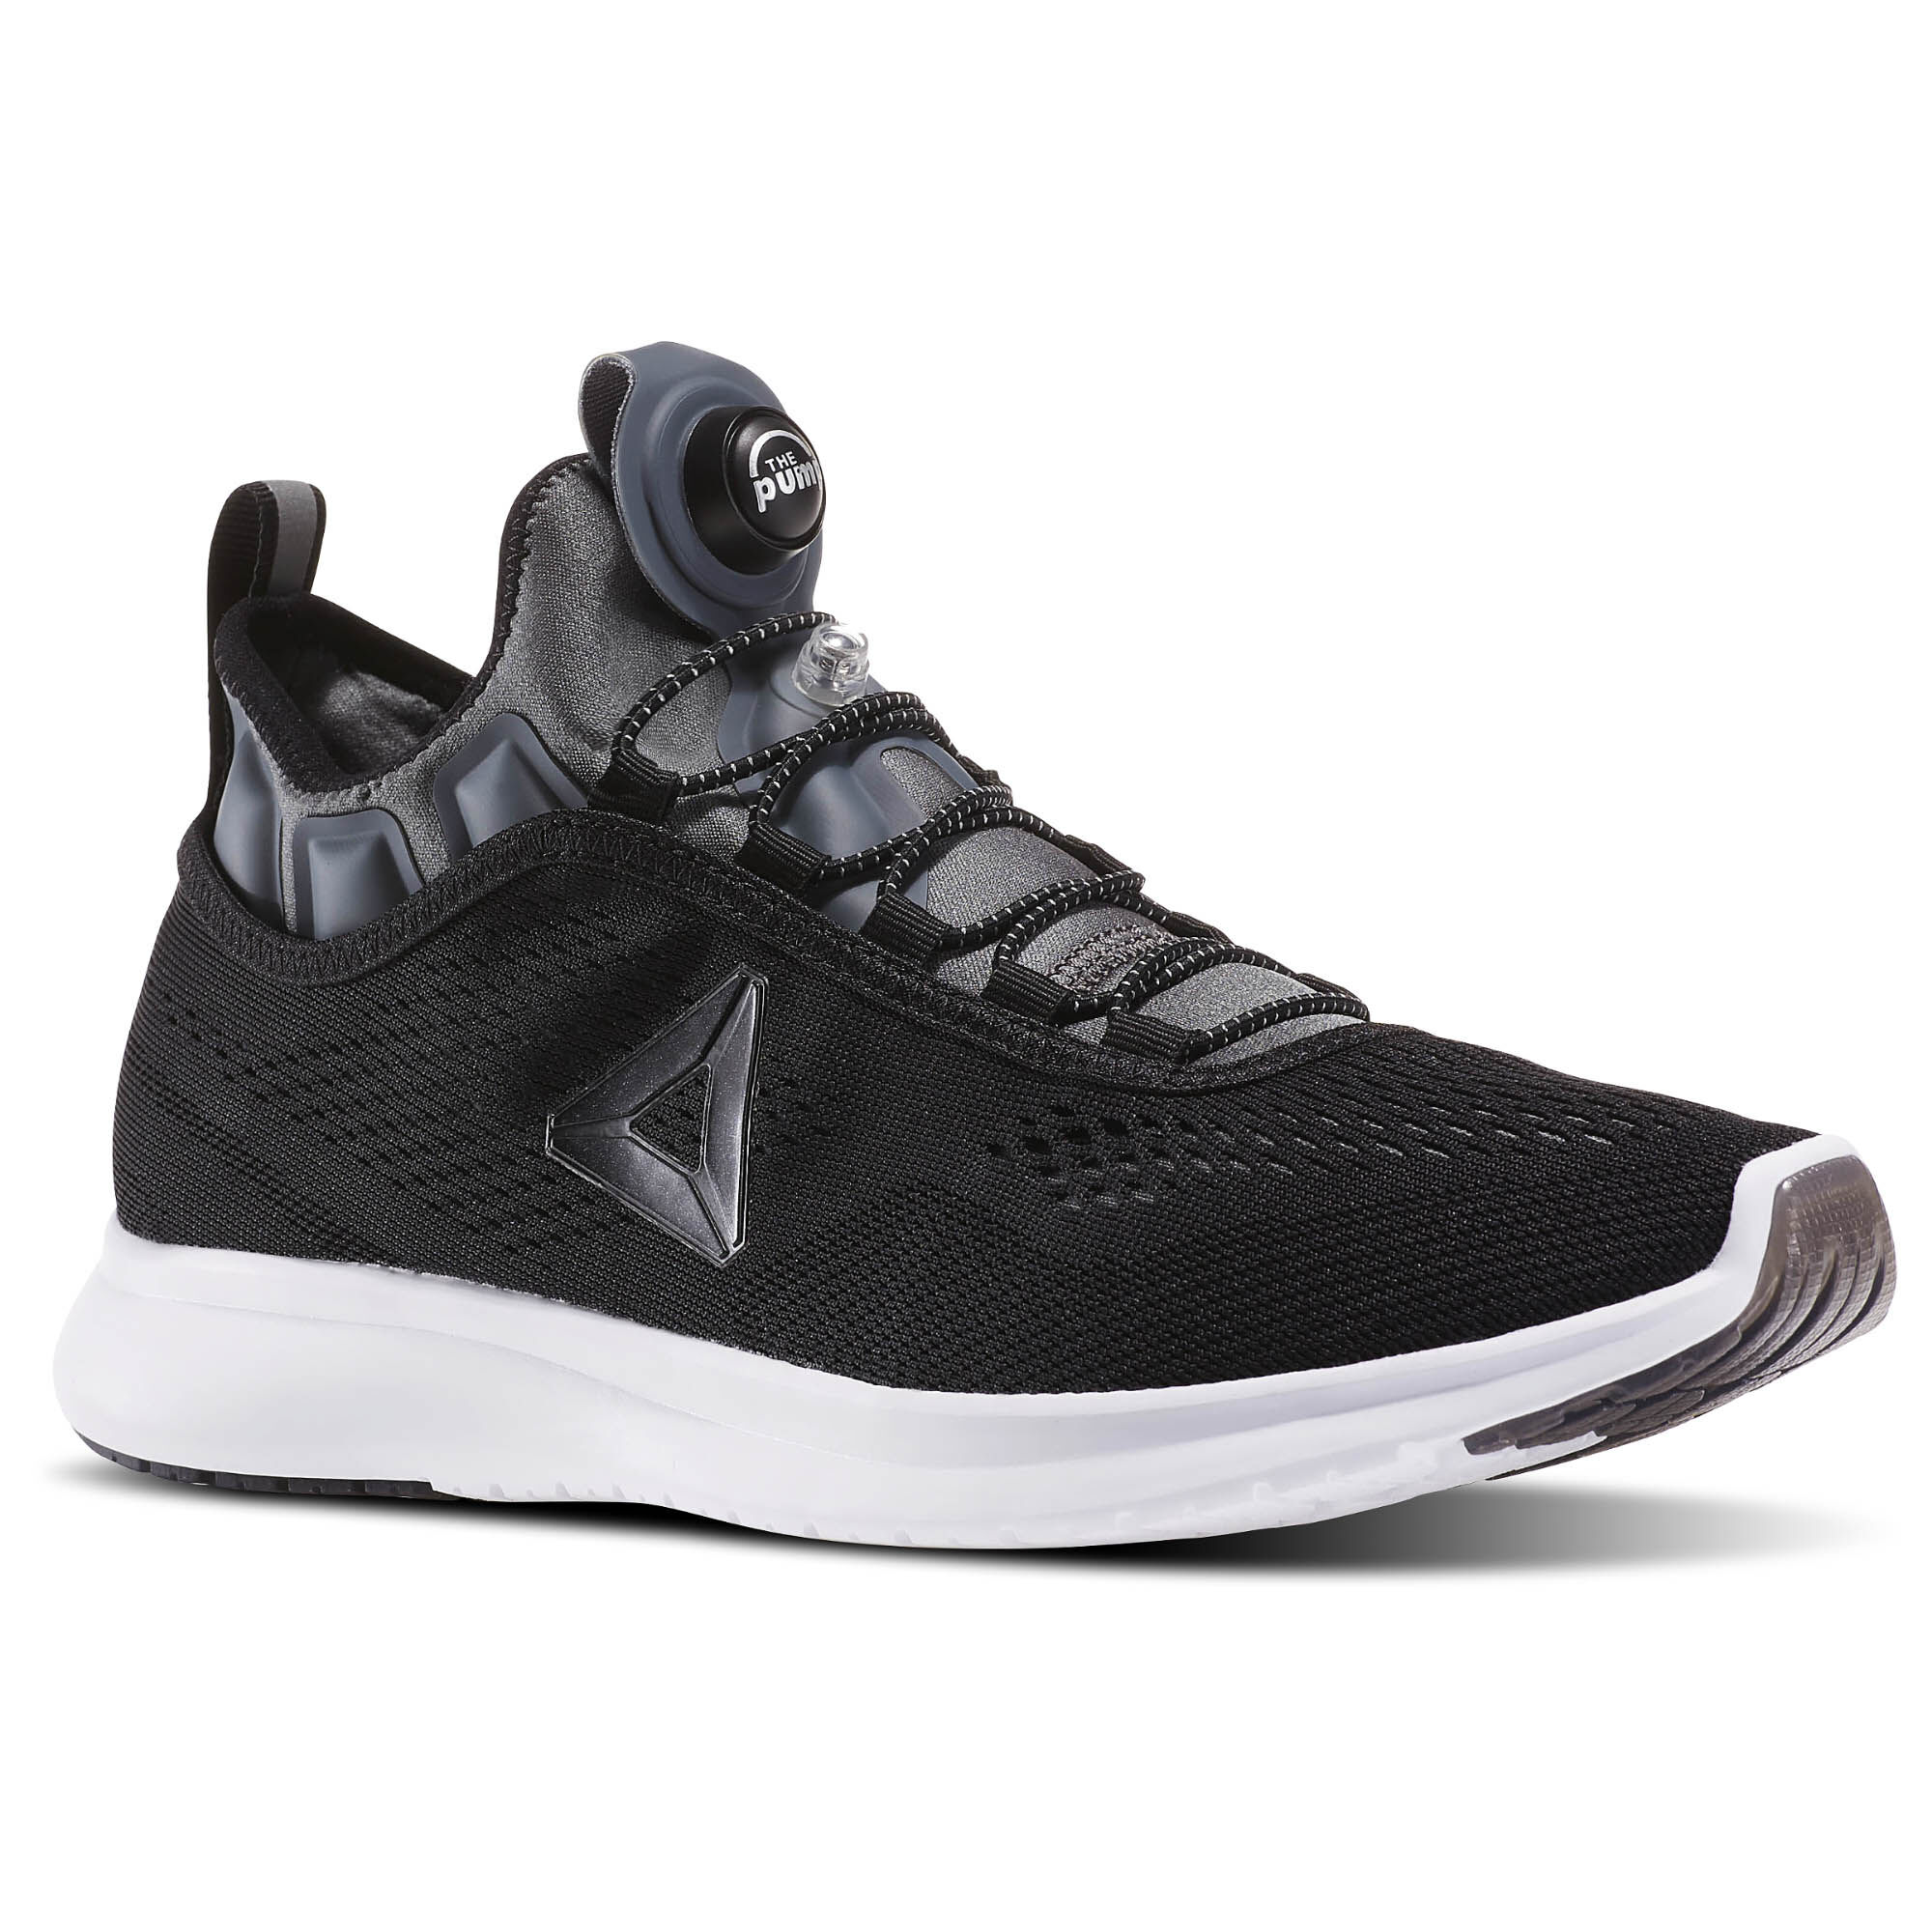 Reebok - Reebok Pump Plus Tech Black/Alloy/White/Silver Metallic BD4866.  Read all 14 reviews. Men Running